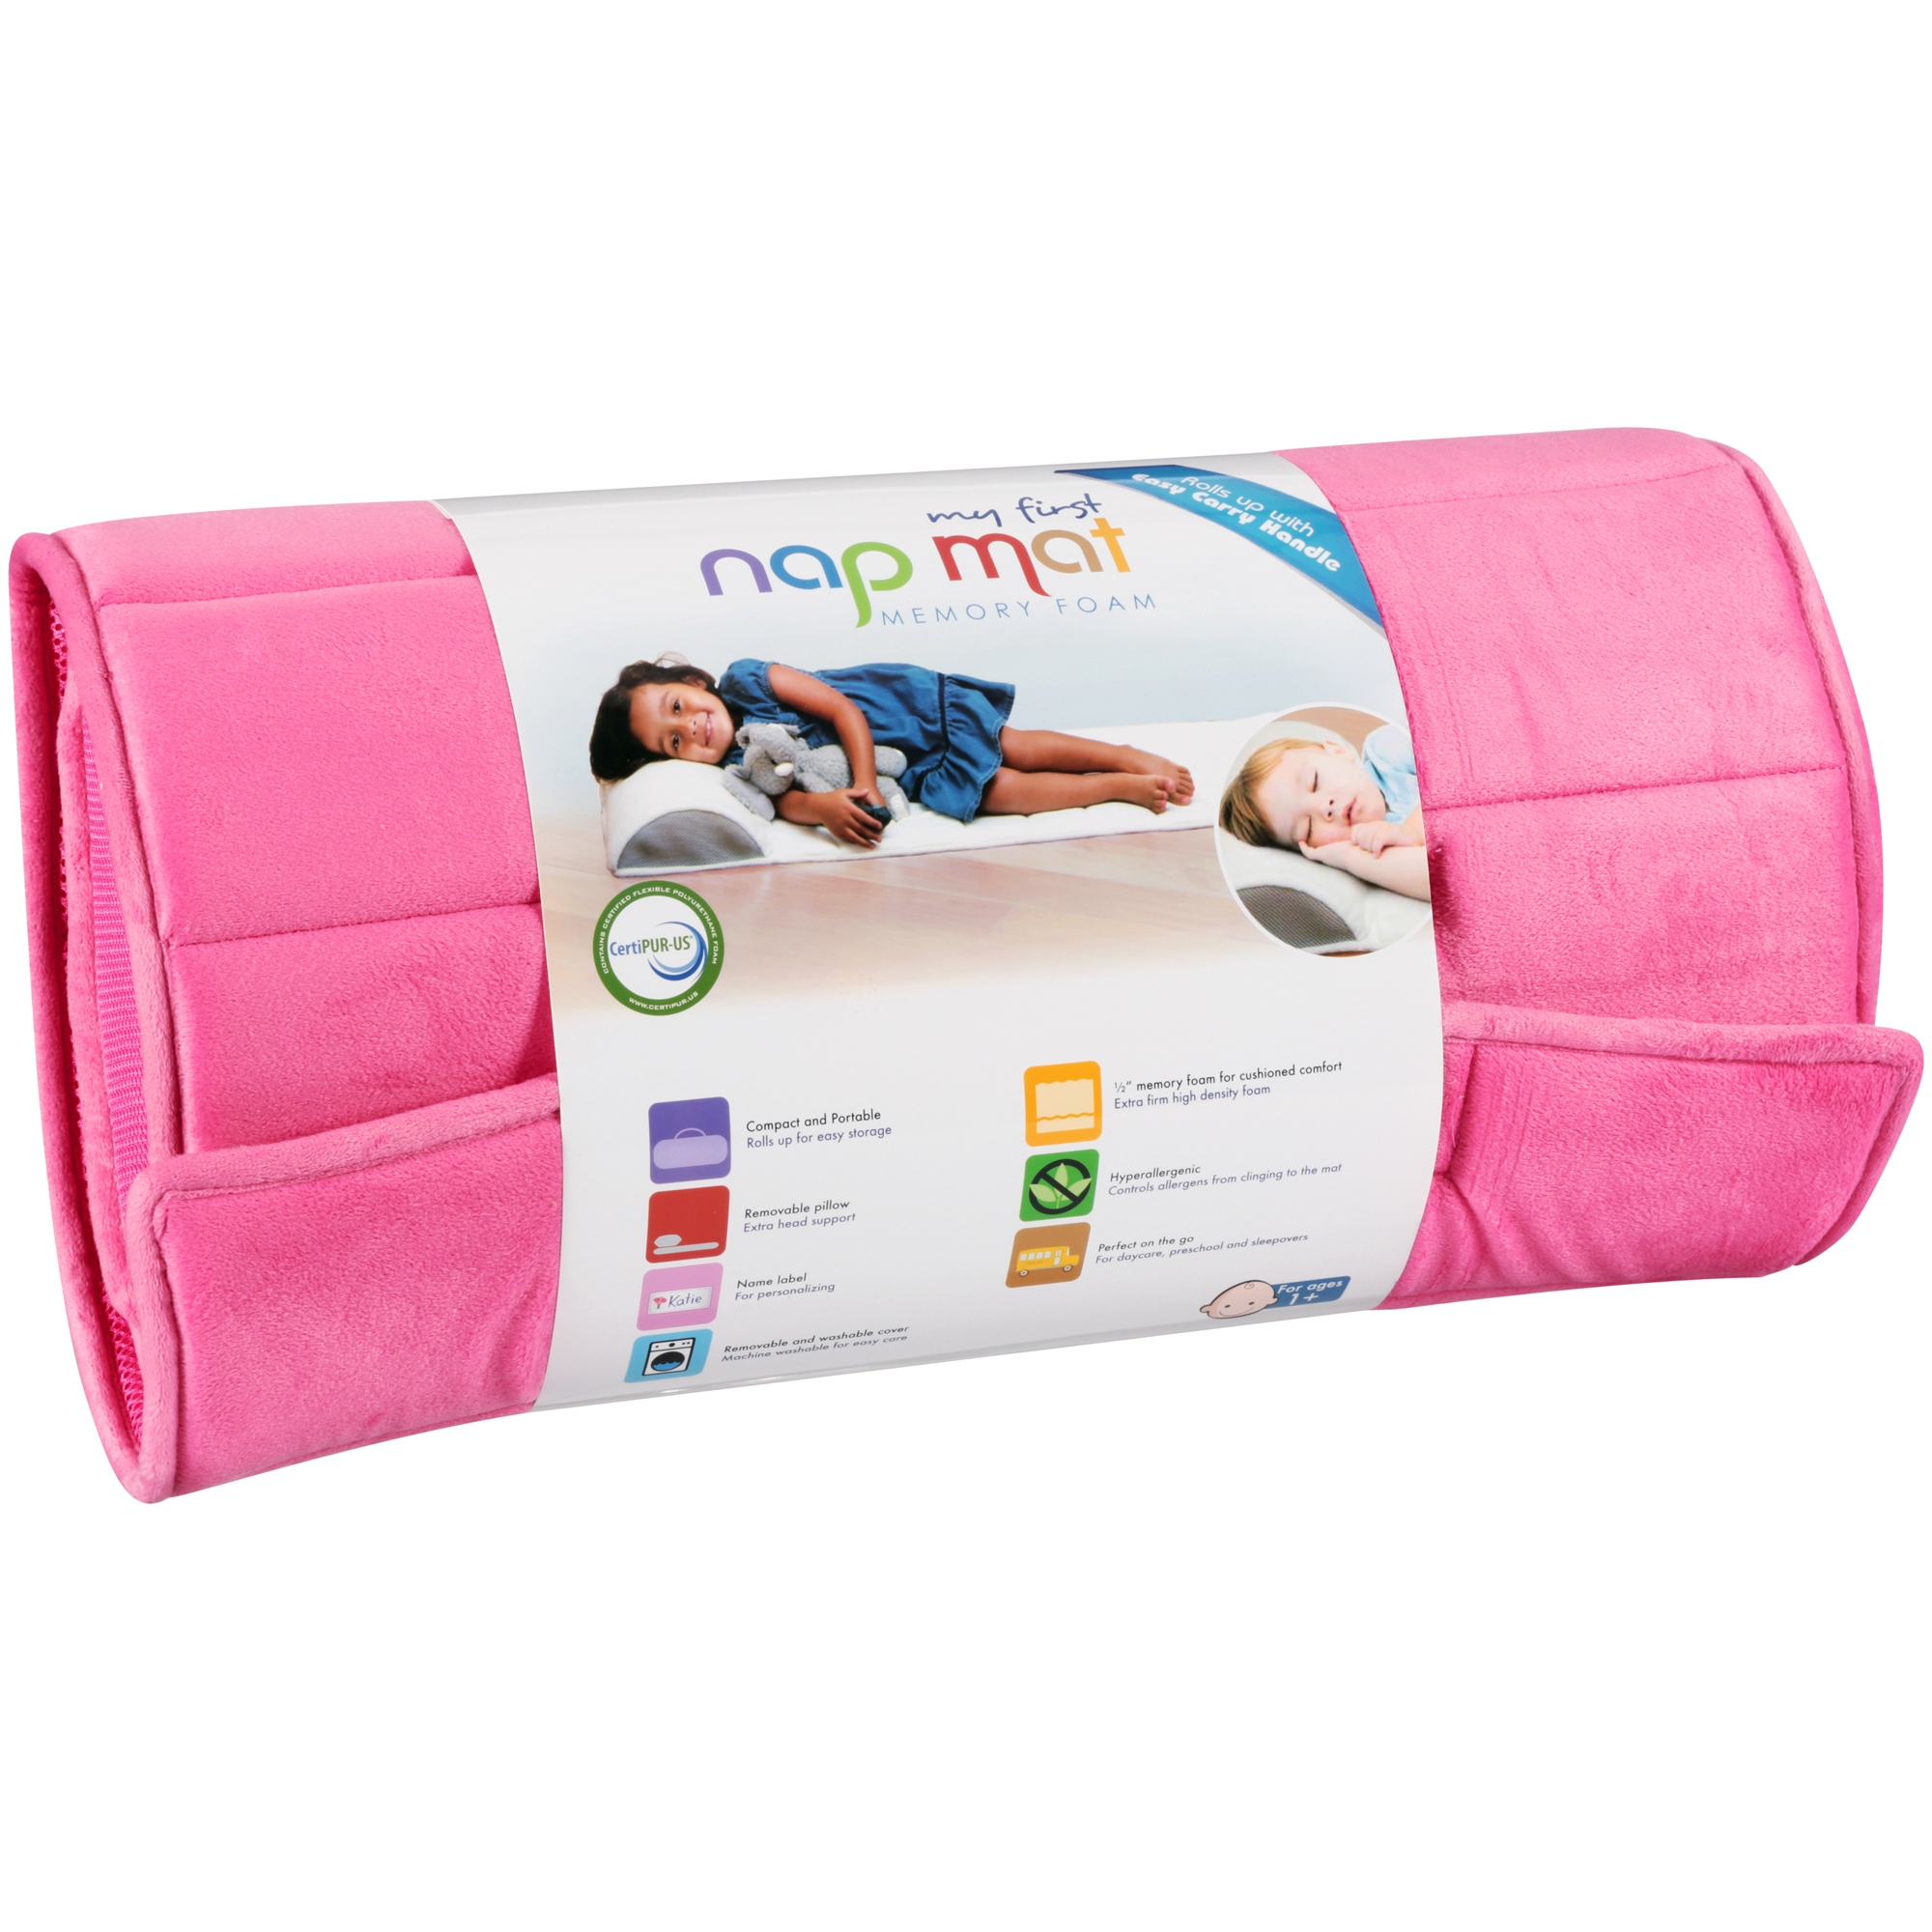 My First Nap Mat, Memory Foam Nap Mat Pad, Attached Removable Pillow, Pink